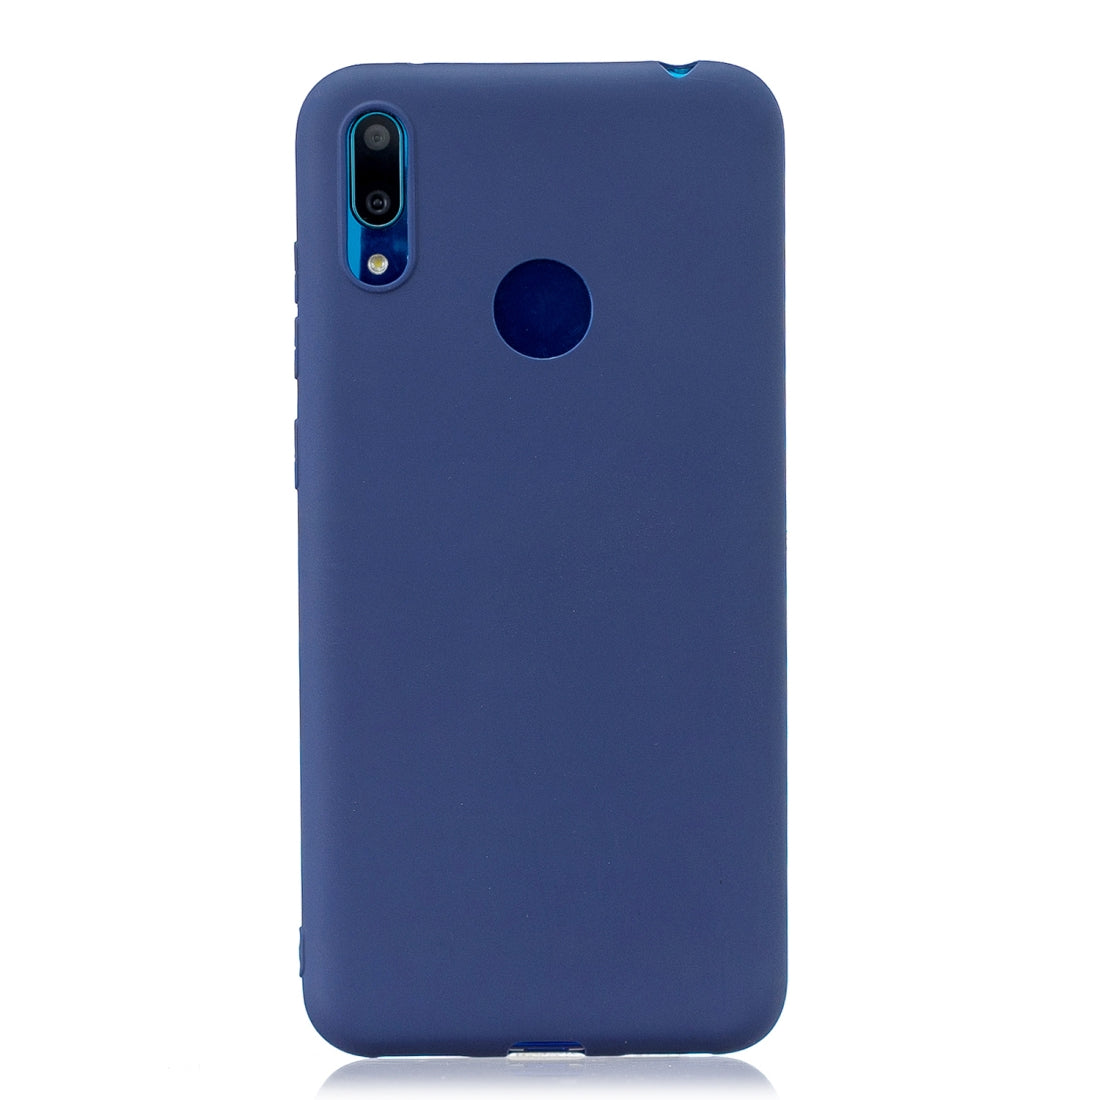 Frosted Solid Color TPU Protective Case for Huawei Y7 2019/Enjoy 9(Royalblue)